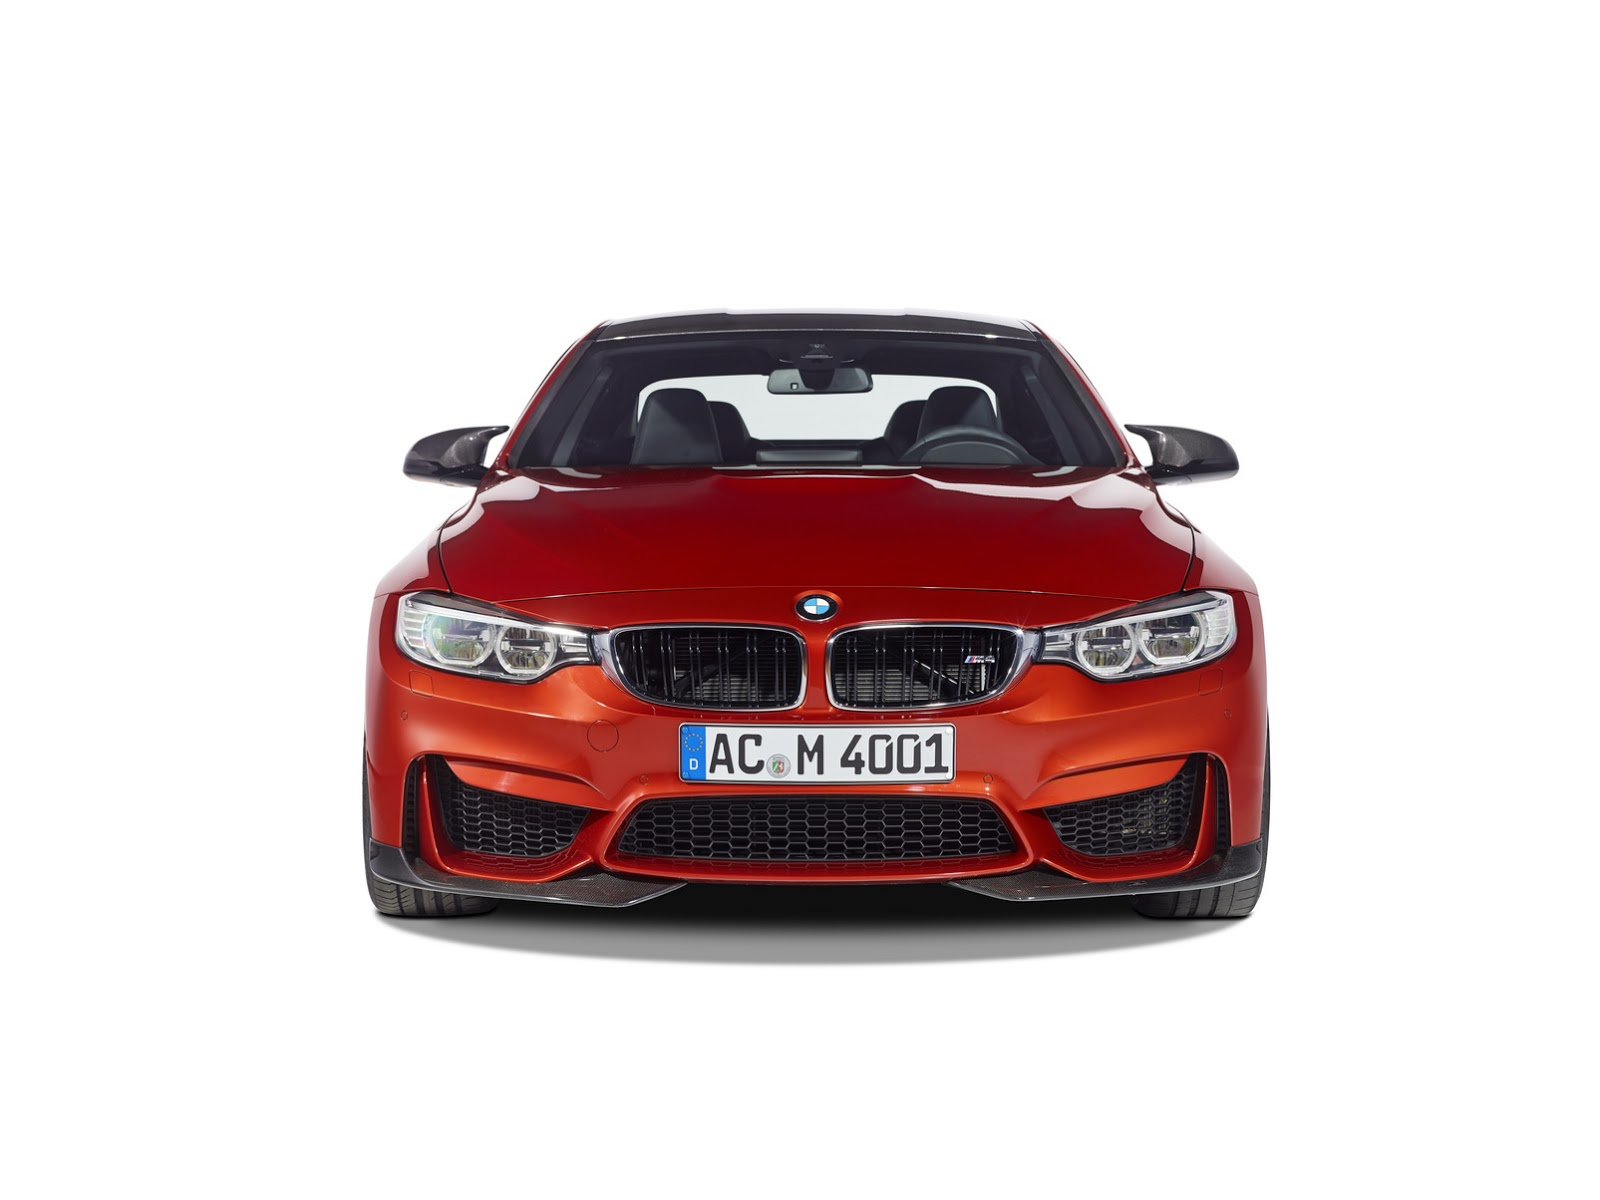 ac schnitzer brings out tuned bmw m4 to essen 39 s catwalk. Black Bedroom Furniture Sets. Home Design Ideas